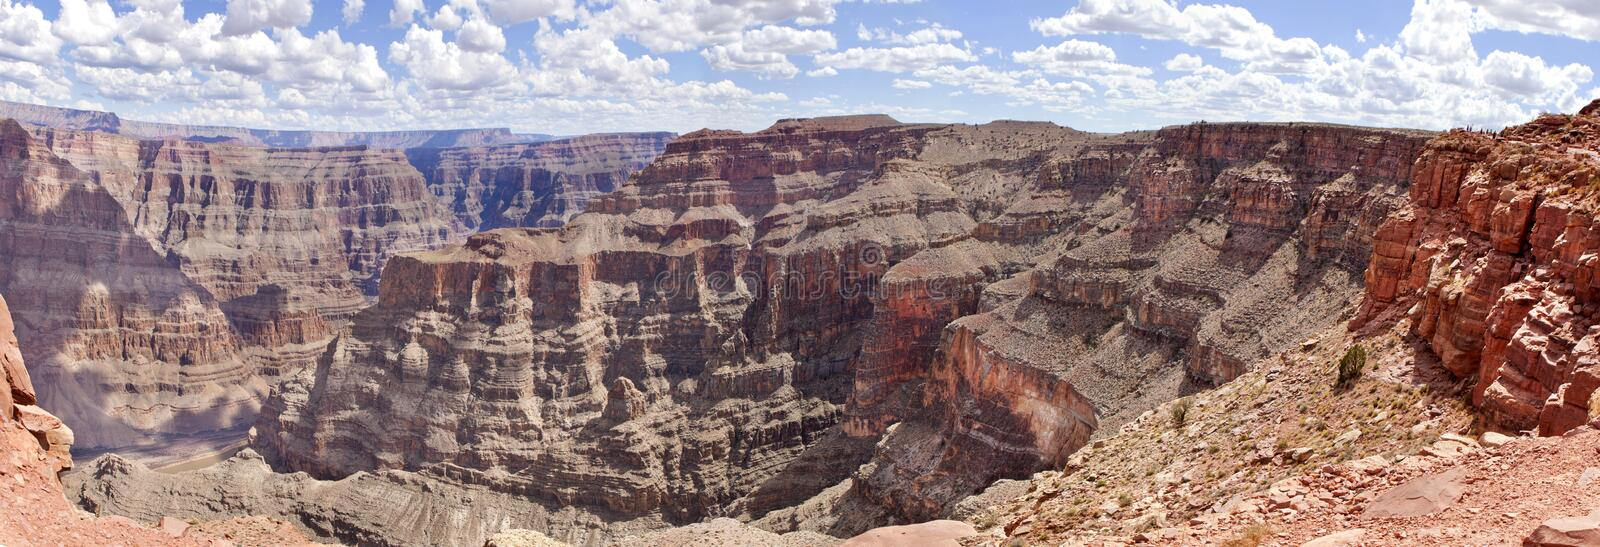 Grand Canyon (Westkante) stockbilder